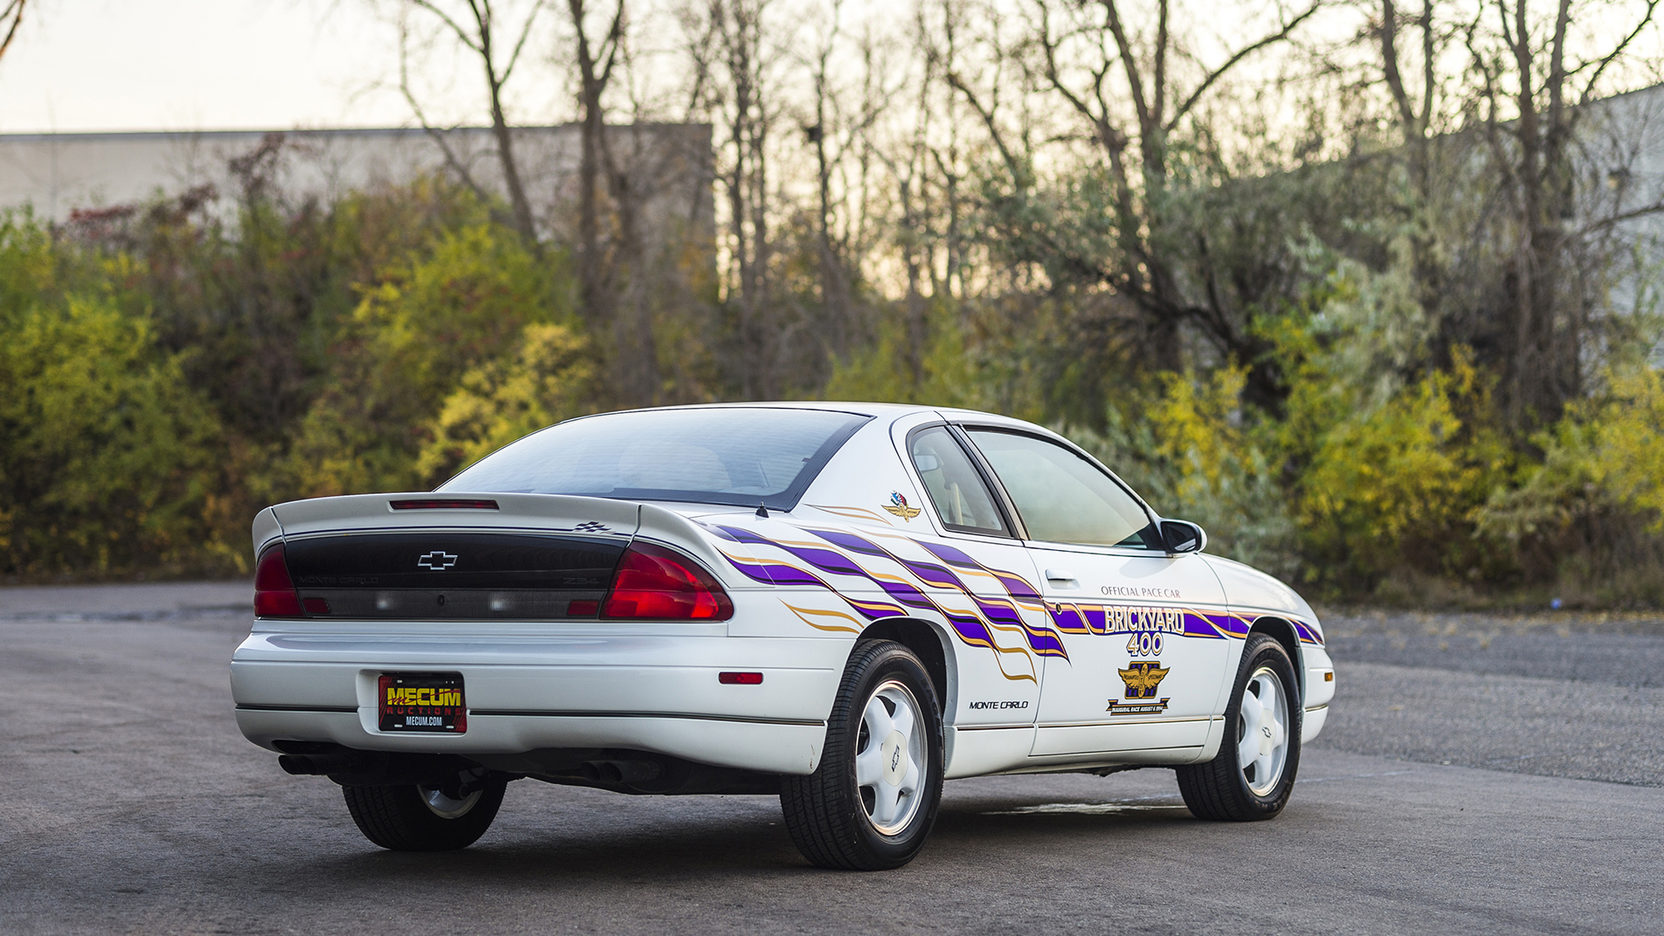 medium resolution of 1995 chevrolet monte carlo z34 pace car edition 3 full screen